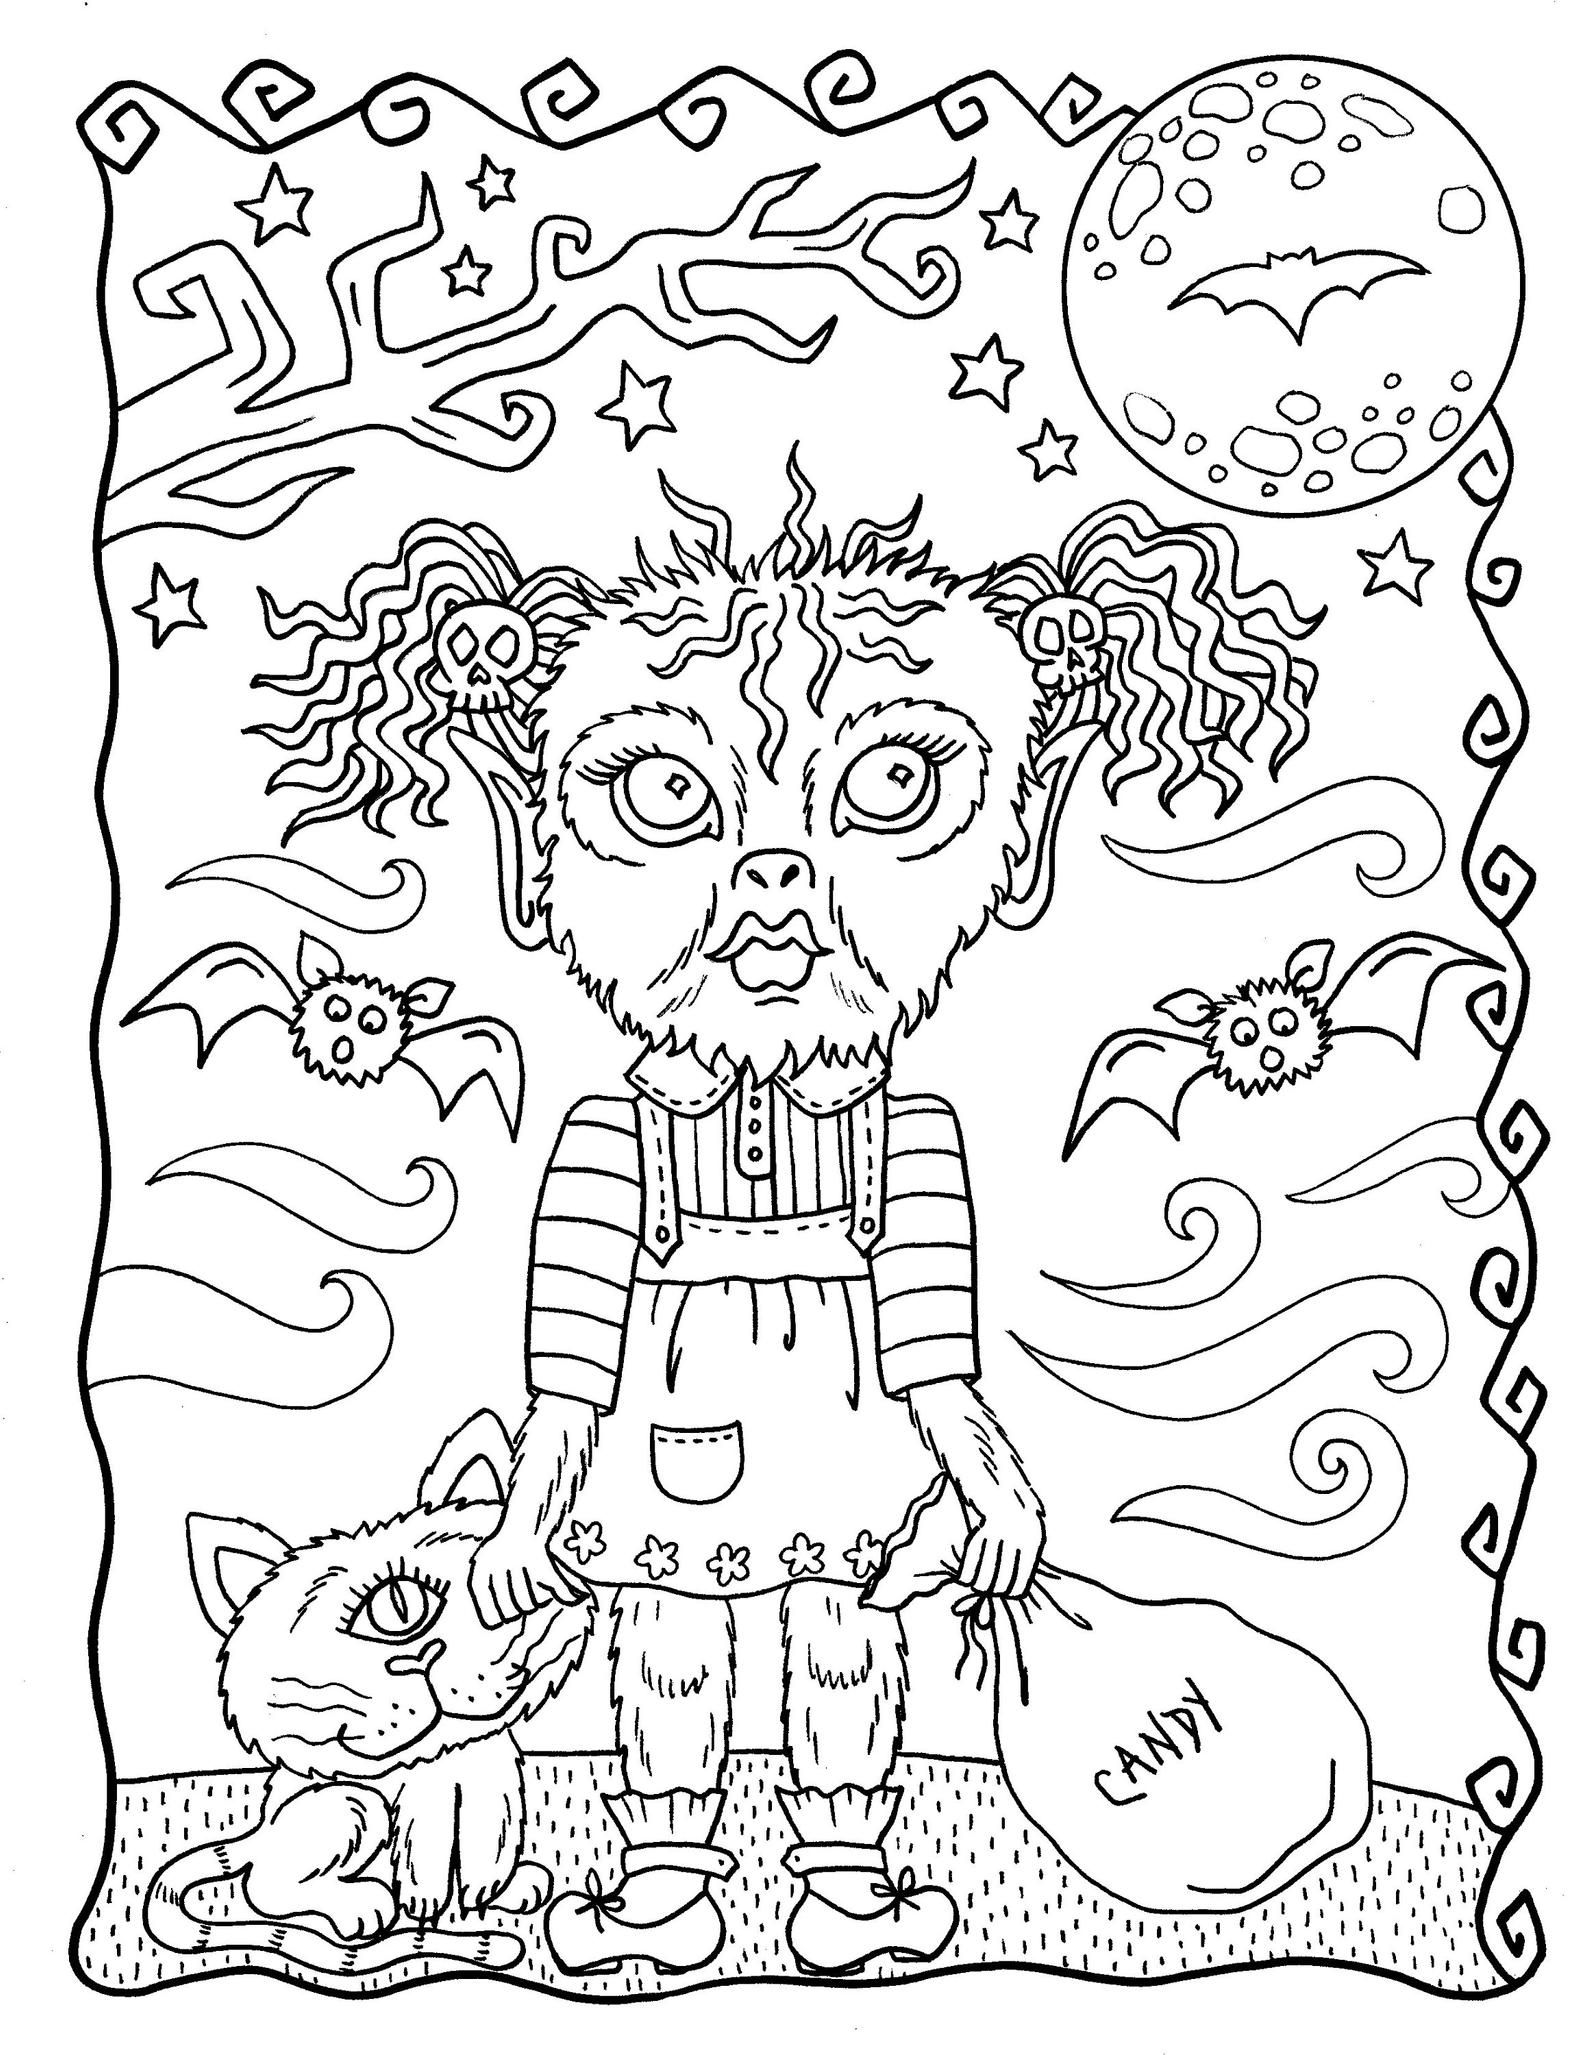 Halloween Darlings Digital Book Fun Little Trick Or Treaters Etsy Halloween Coloring Pages Pokemon Coloring Pages Pop Art Coloring Pages